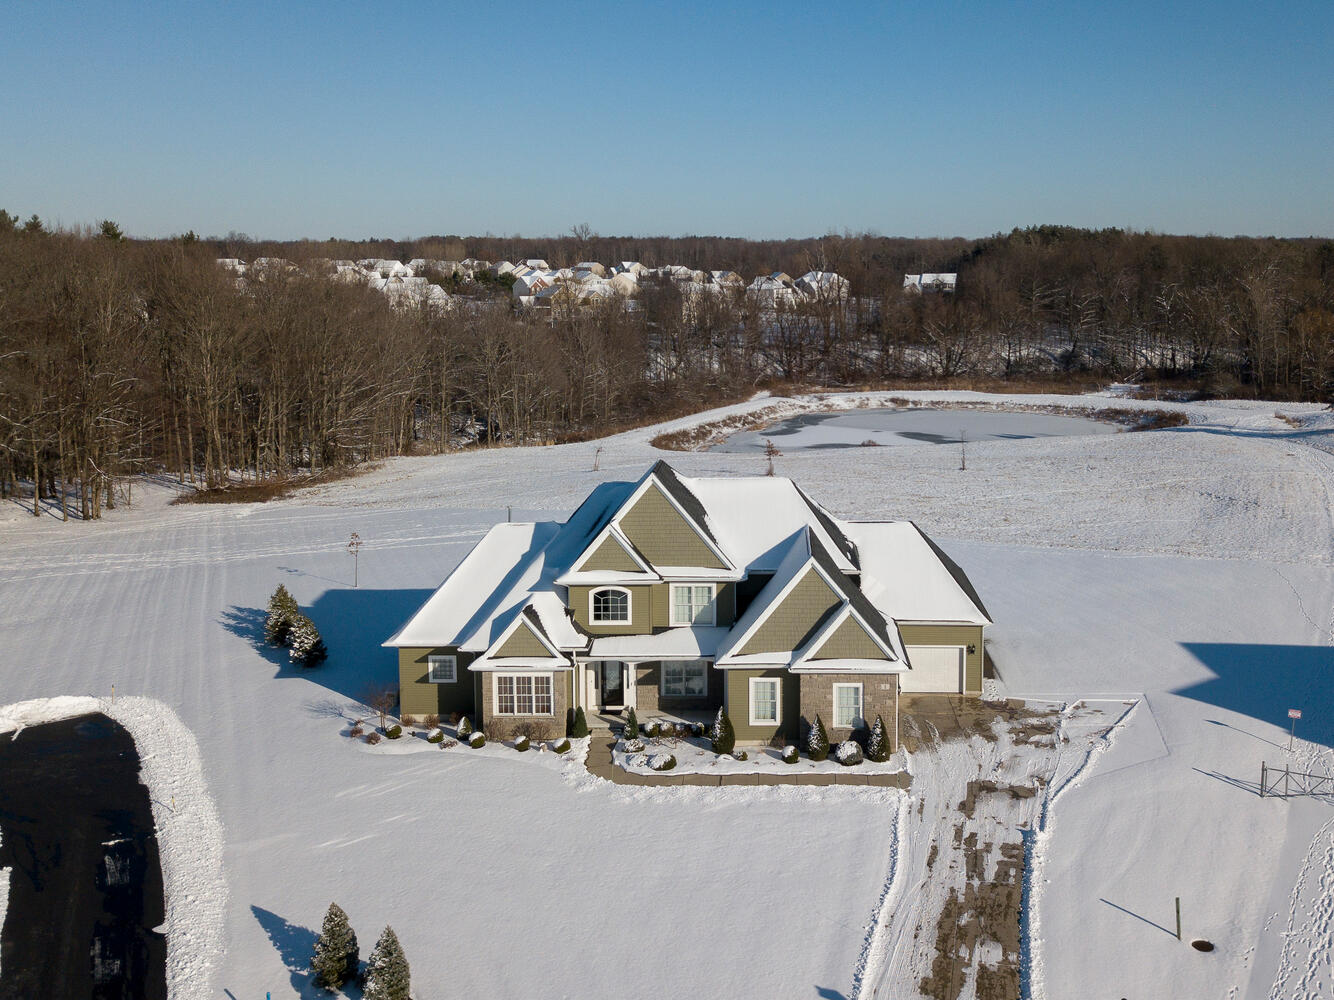 1 Evergreen Trail Orchard Park-large-029-002-Aerial-1335×1000-72dpi